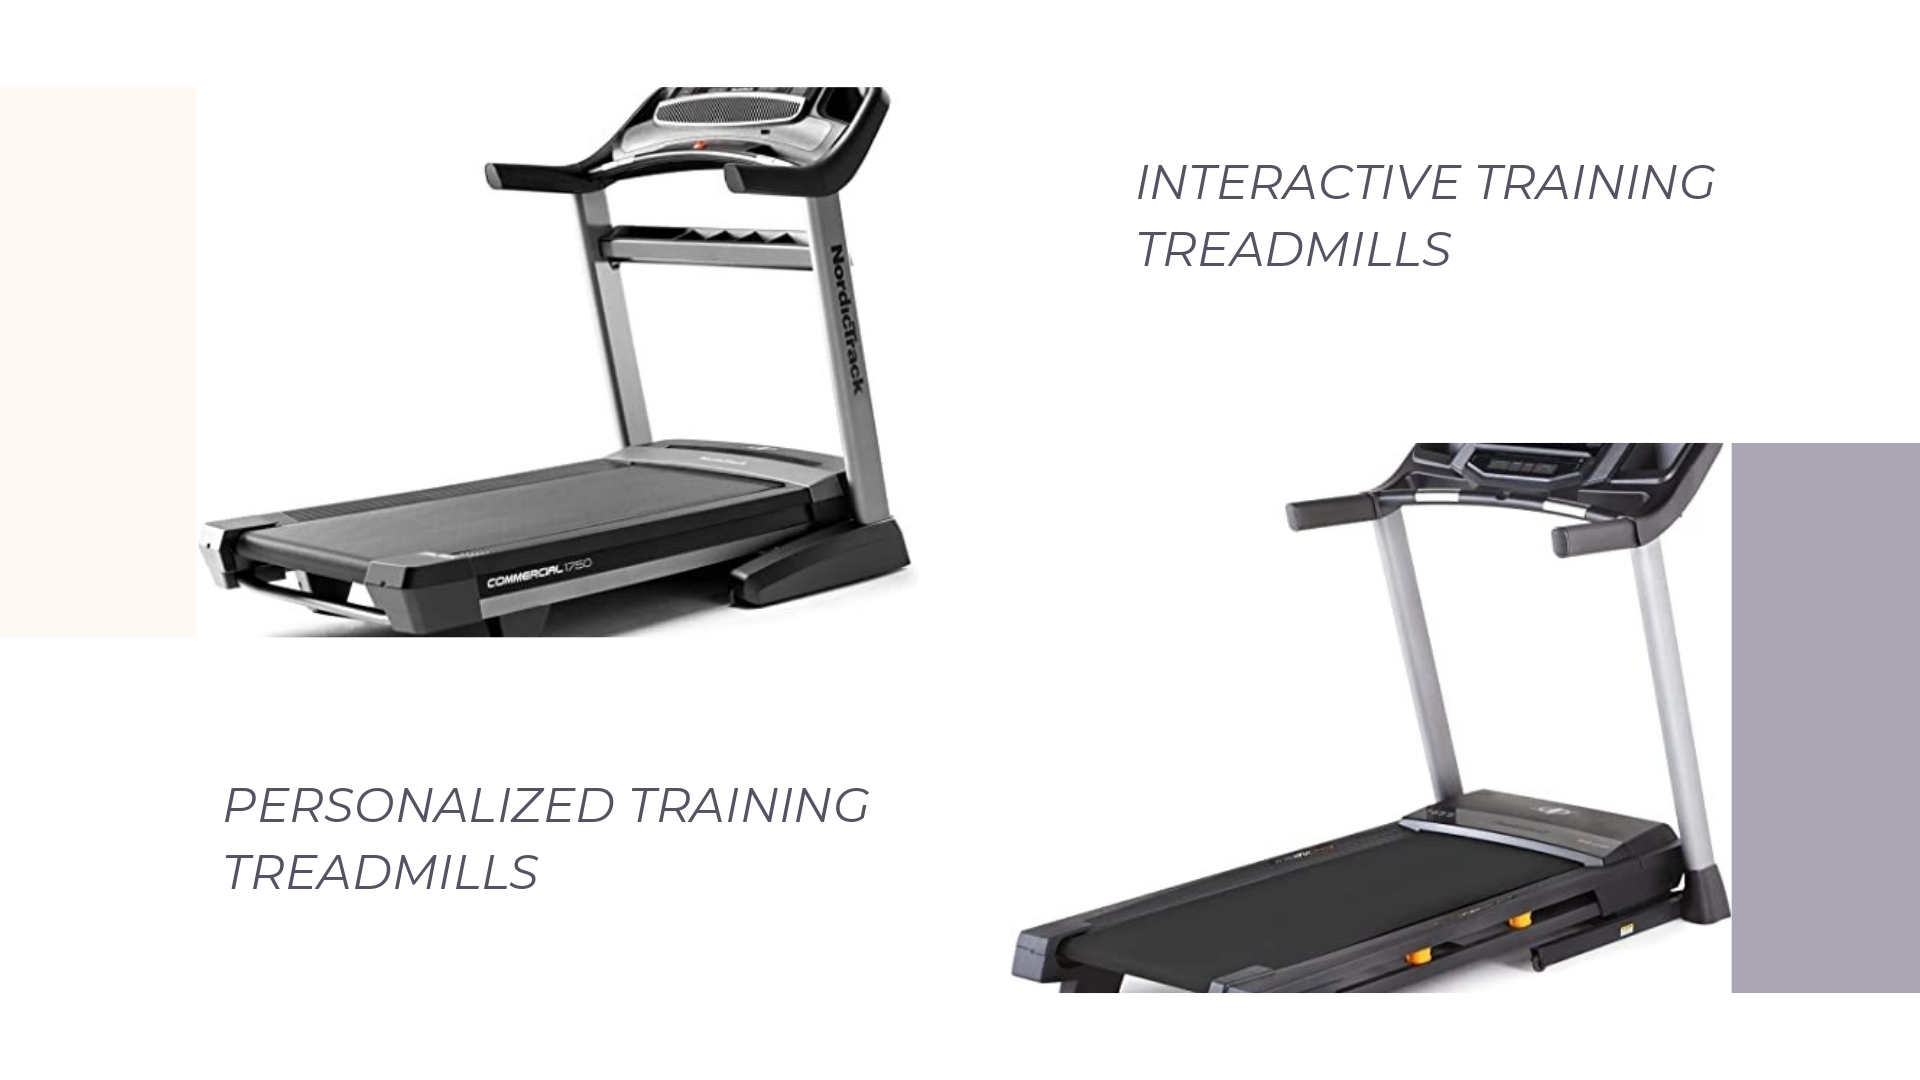 6 Best NordicTrack Treadmill Reviews Personalized & Interactive Training